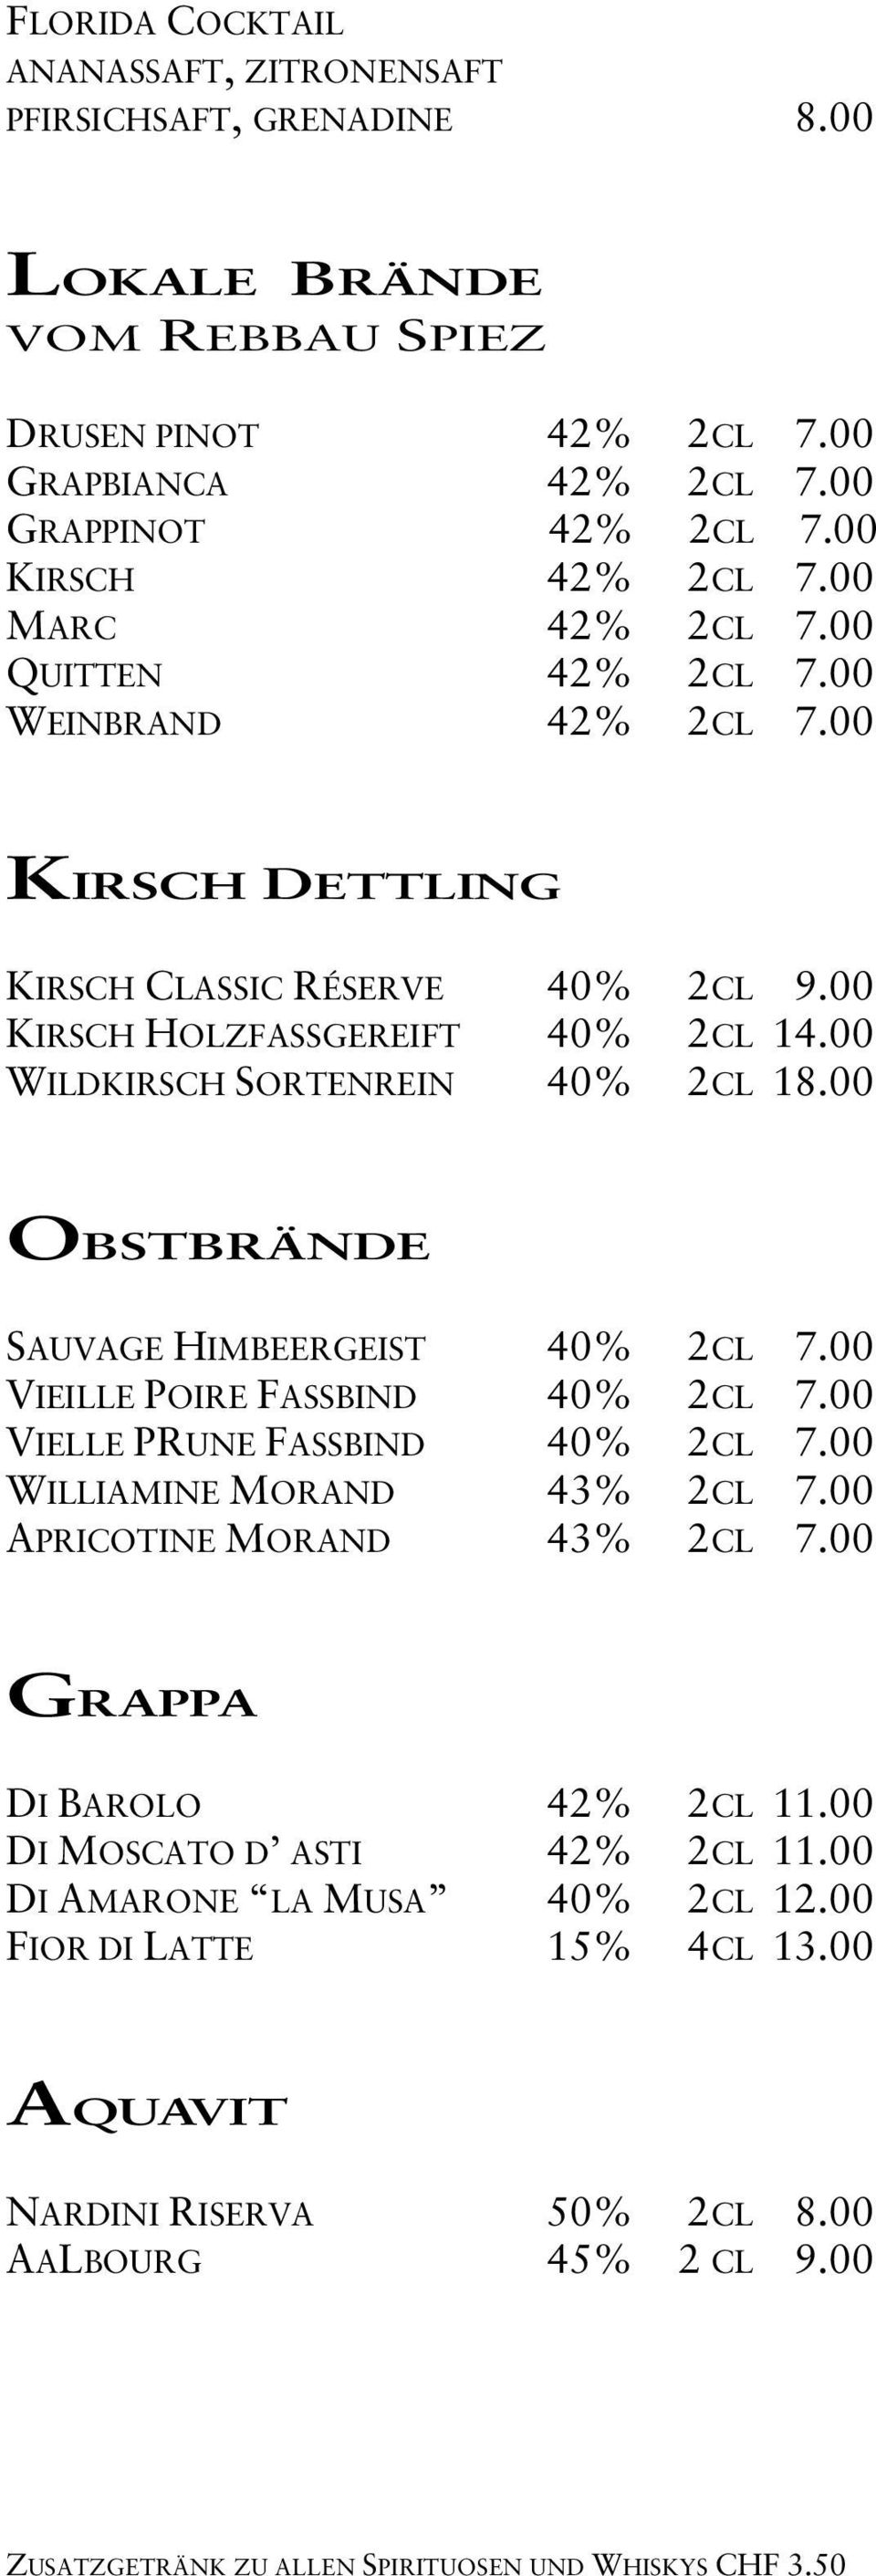 00 WILDKIRSCH SORTENREIN 40% 2CL 18.00 OBSTBRÄNDE SAUVAGE HIMBEERGEIST 40% 2CL 7.00 VIEILLE POIRE FASSBIND 40% 2CL 7.00 VIELLE PRUNE FASSBIND 40% 2CL 7.00 WILLIAMINE MORAND 43% 2CL 7.